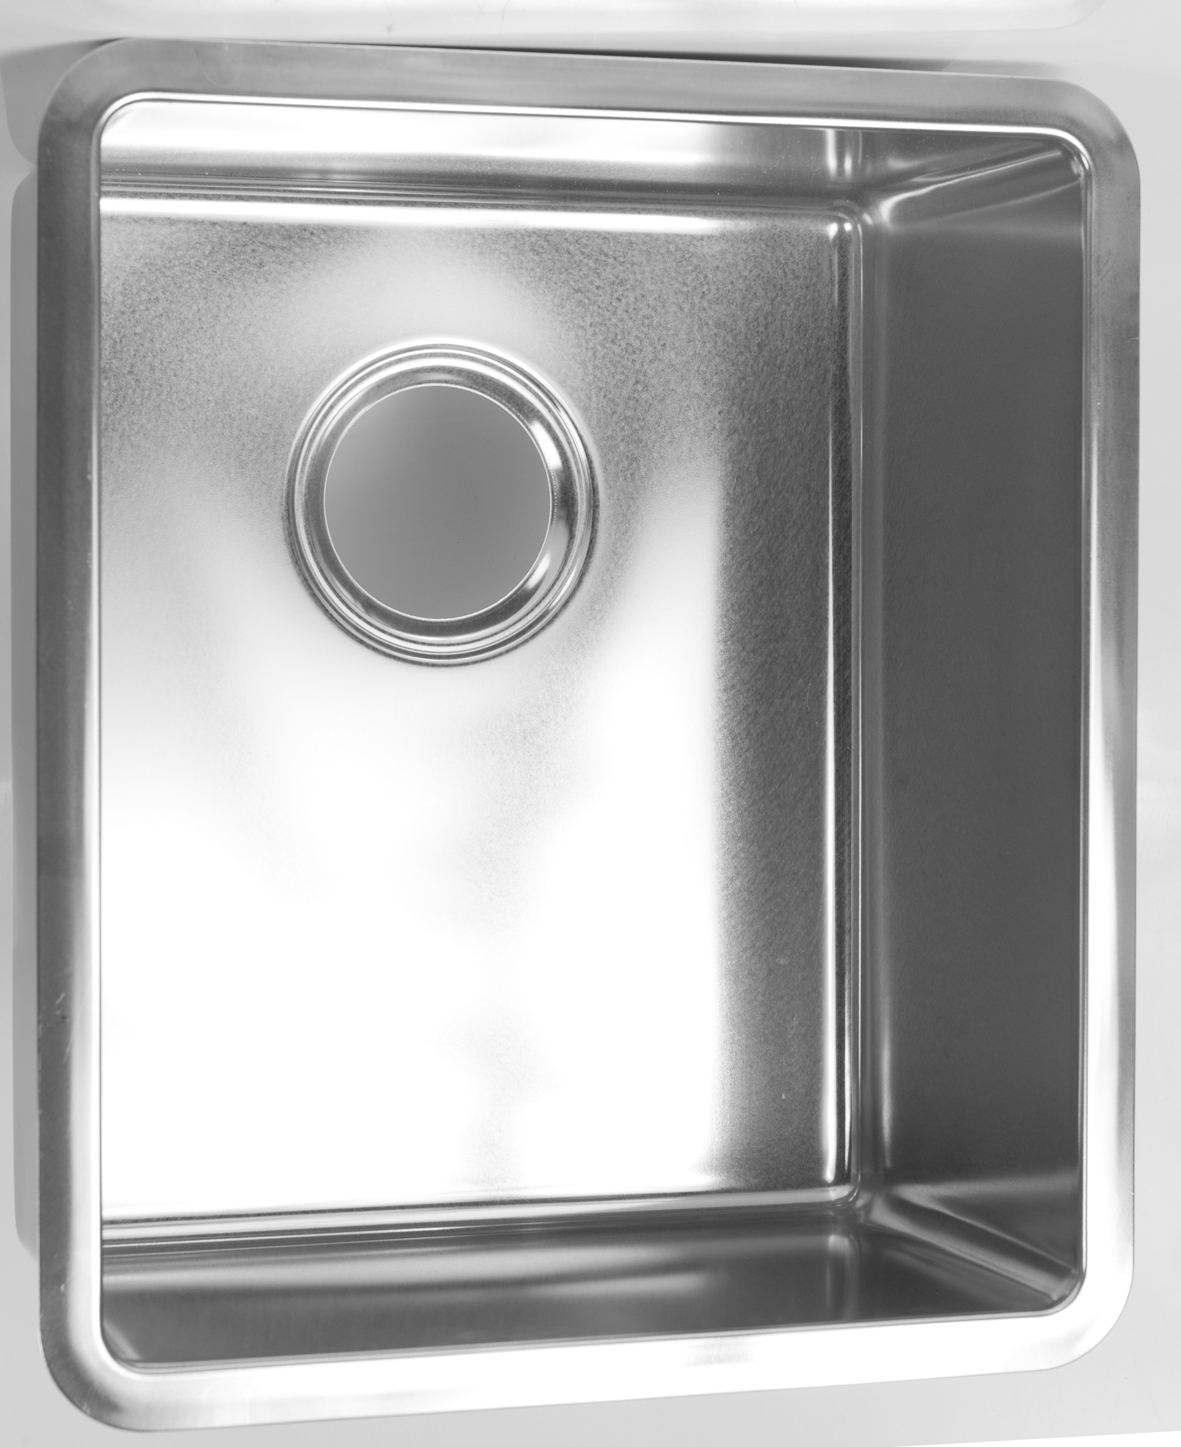 Tight corner radius  sink 304 stainless steel 340 x 400 x 200